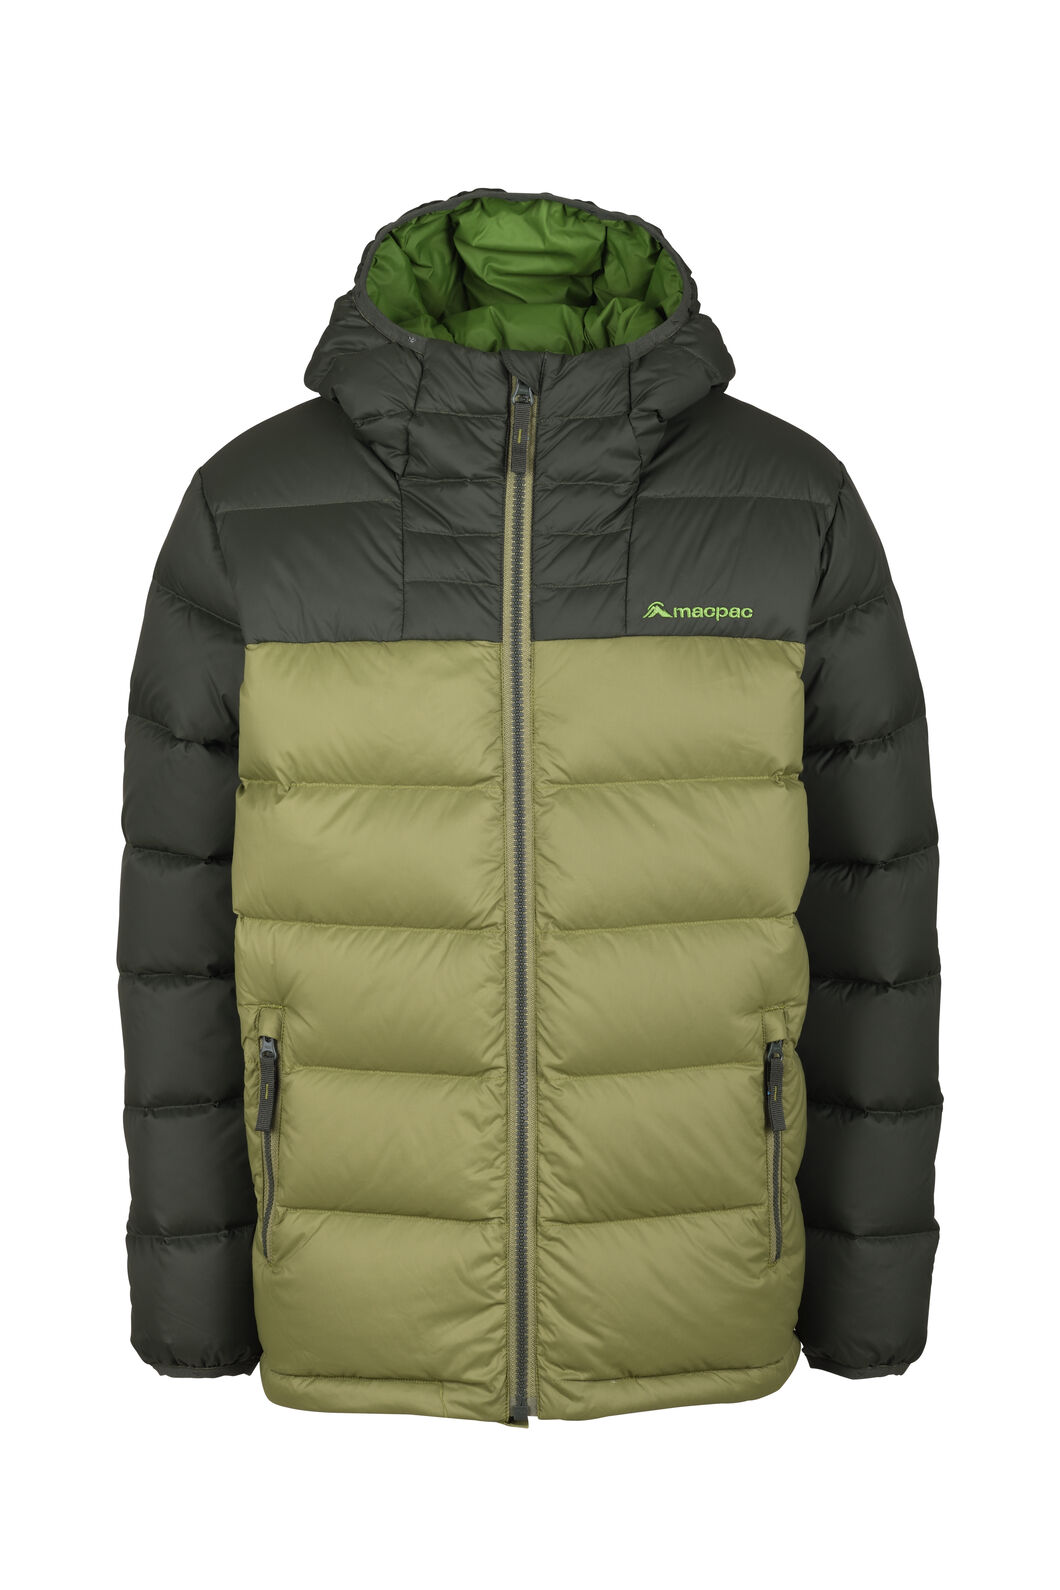 Macpac Atom Hooded Down Jacket - Kids', Loden/Kombu, hi-res